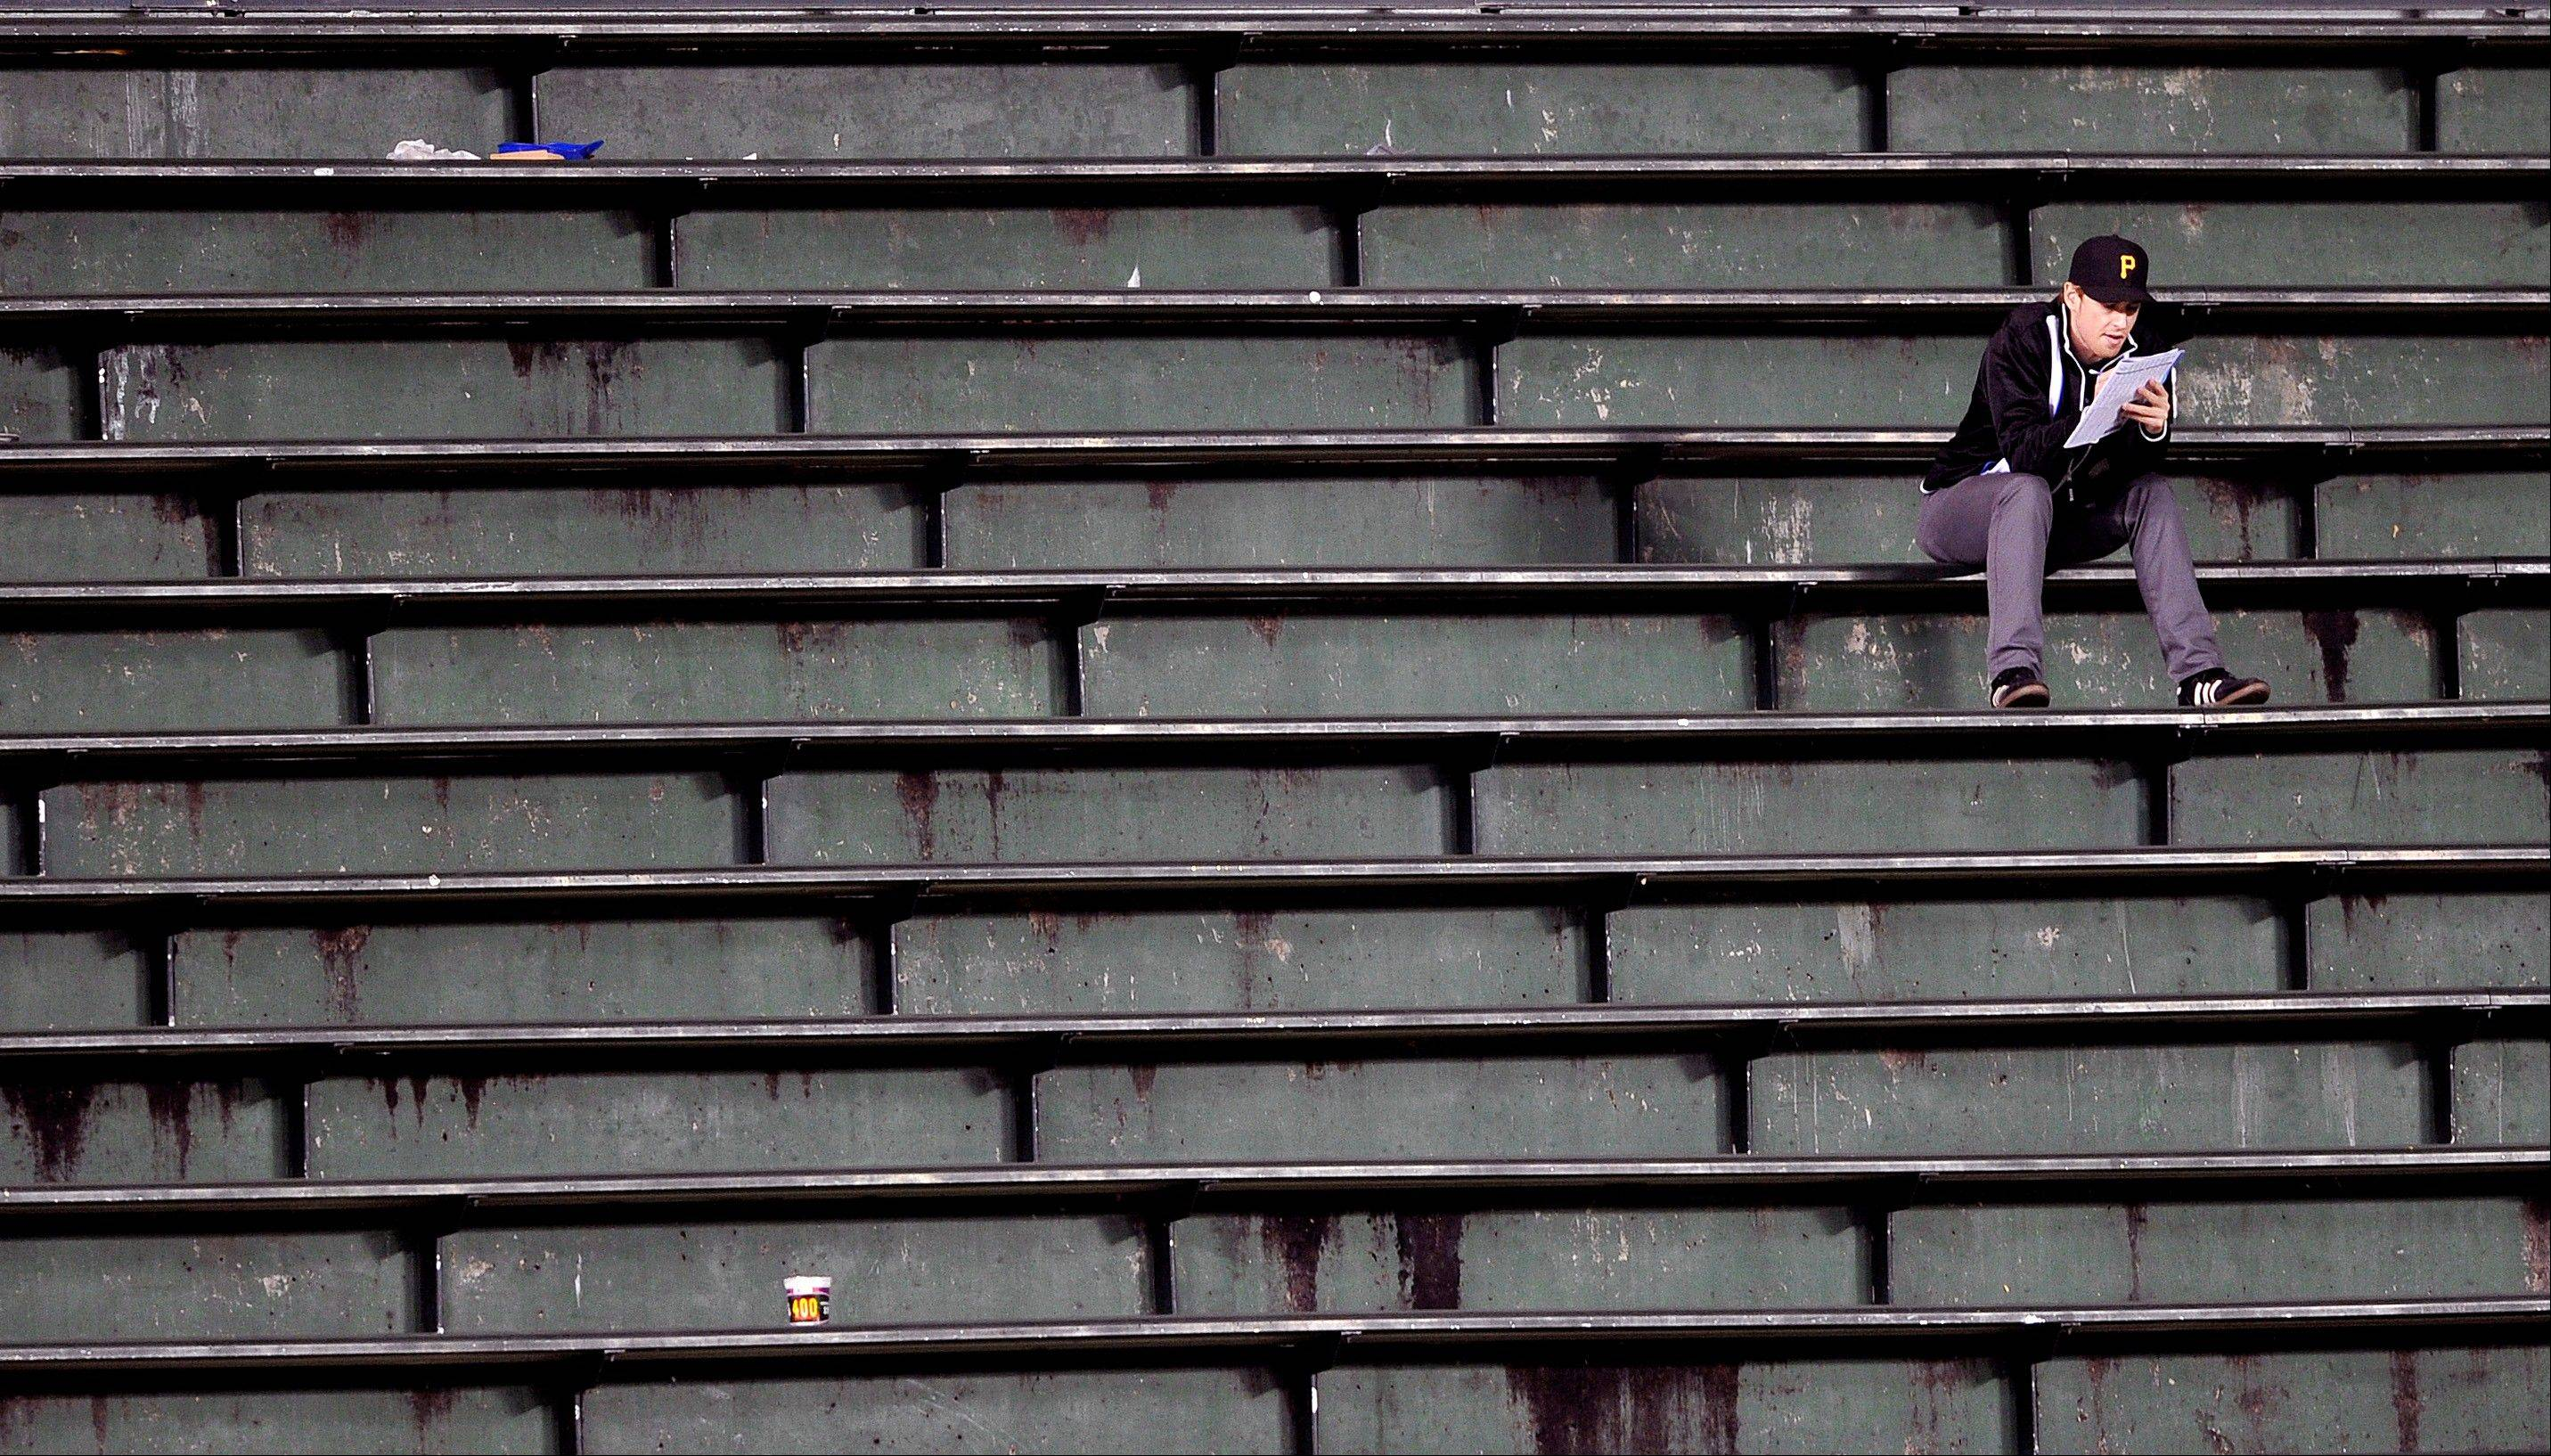 A fan sits all alone in the bleachers during the eighth inning of a baseball game between the Pittsburgh Pirates and Chicago Cubs. It was a Monday night game going into Tuesday morning by then.